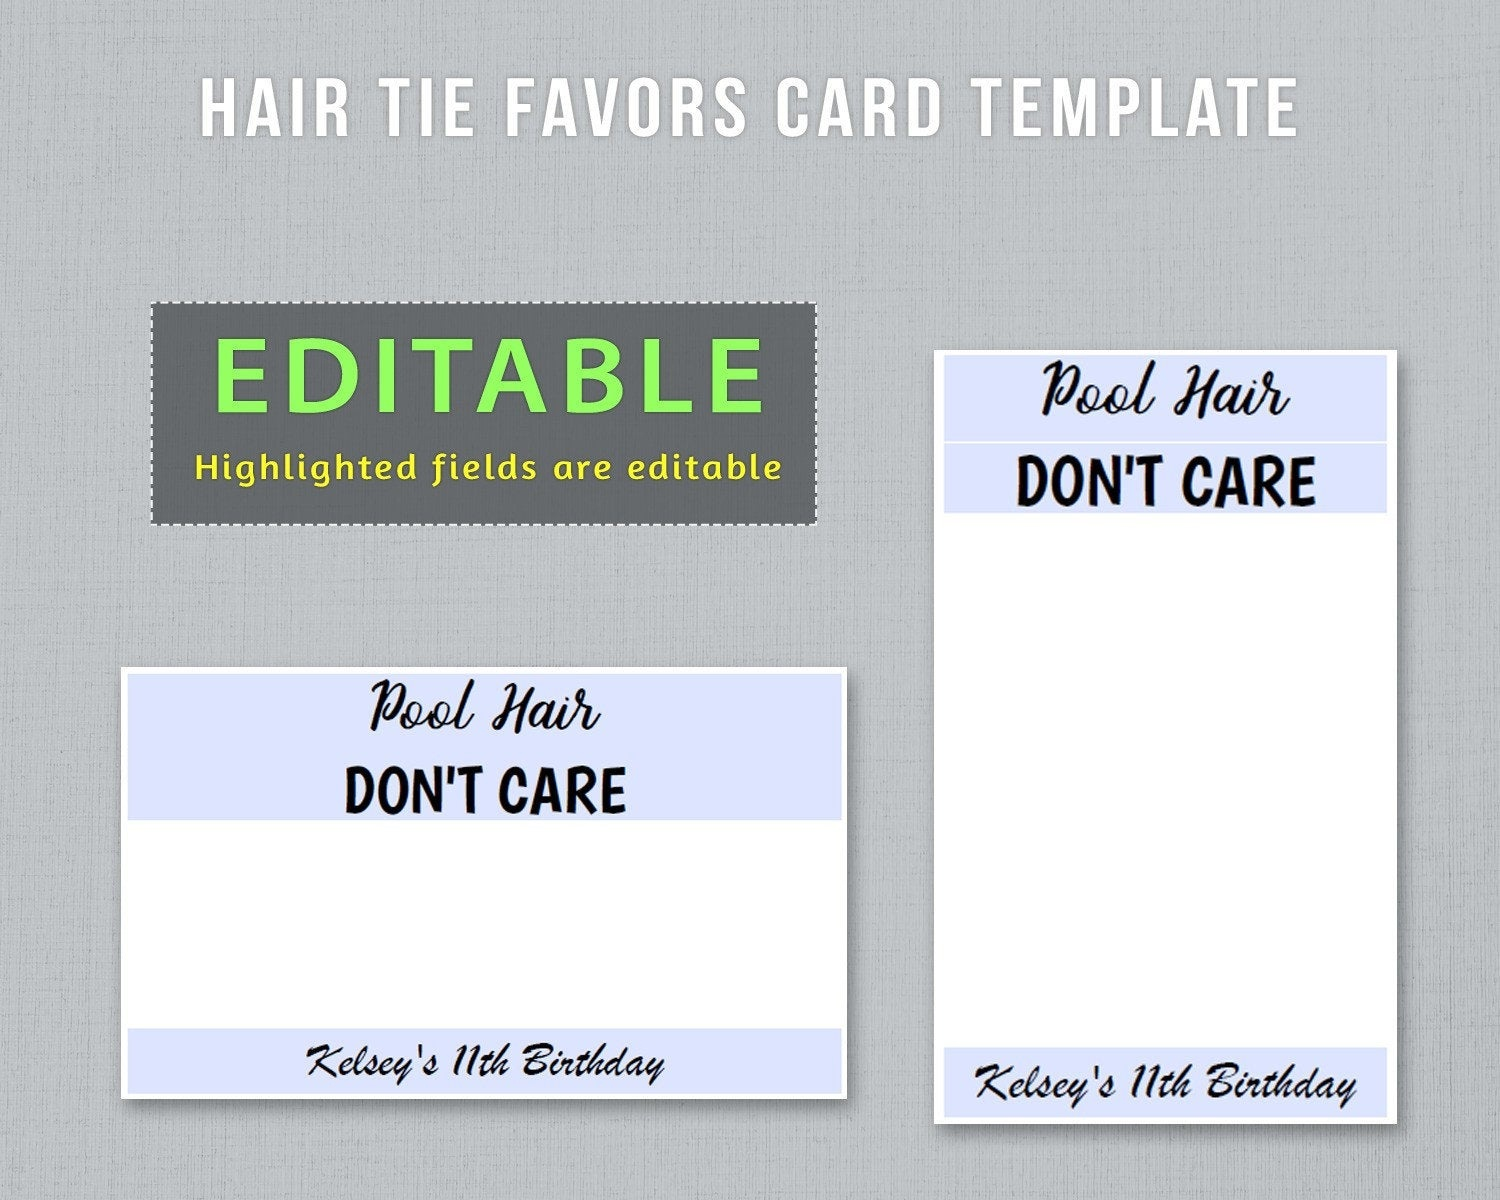 Editable Hair Tie Favors Card Template To Have And To Hold | Etsy - To Have And To Hold Your Hair Back Free Printable